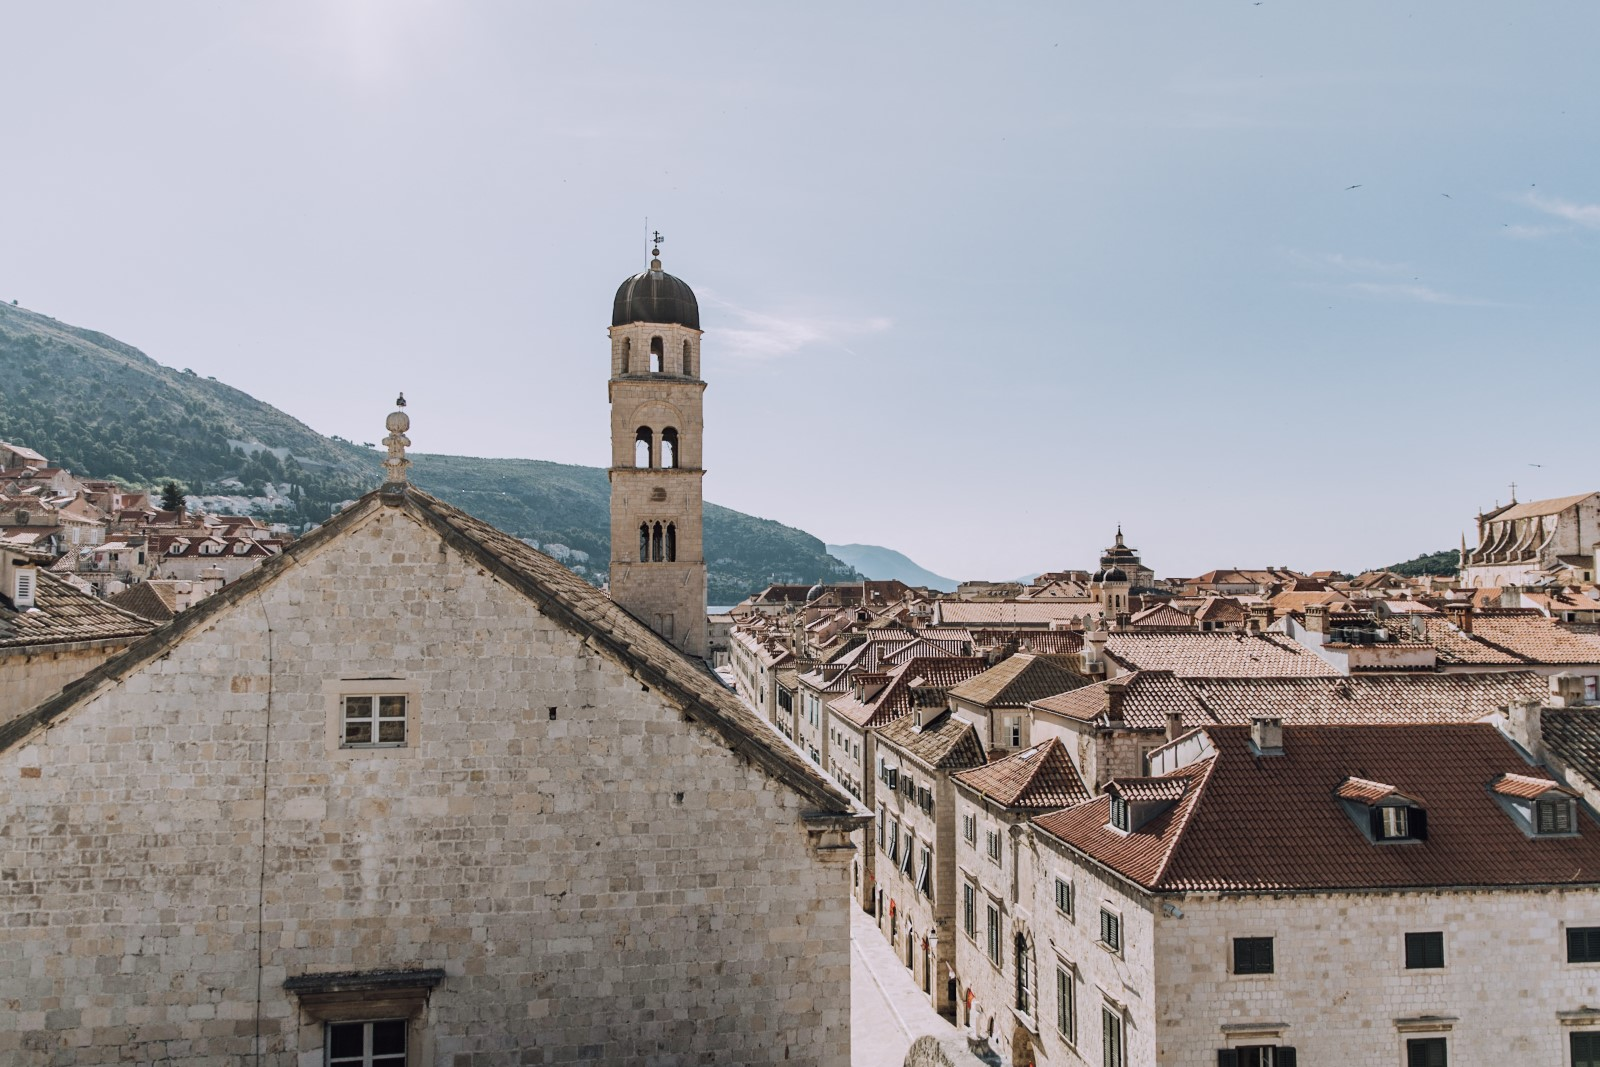 View of street and bell tower in Dubrovnik